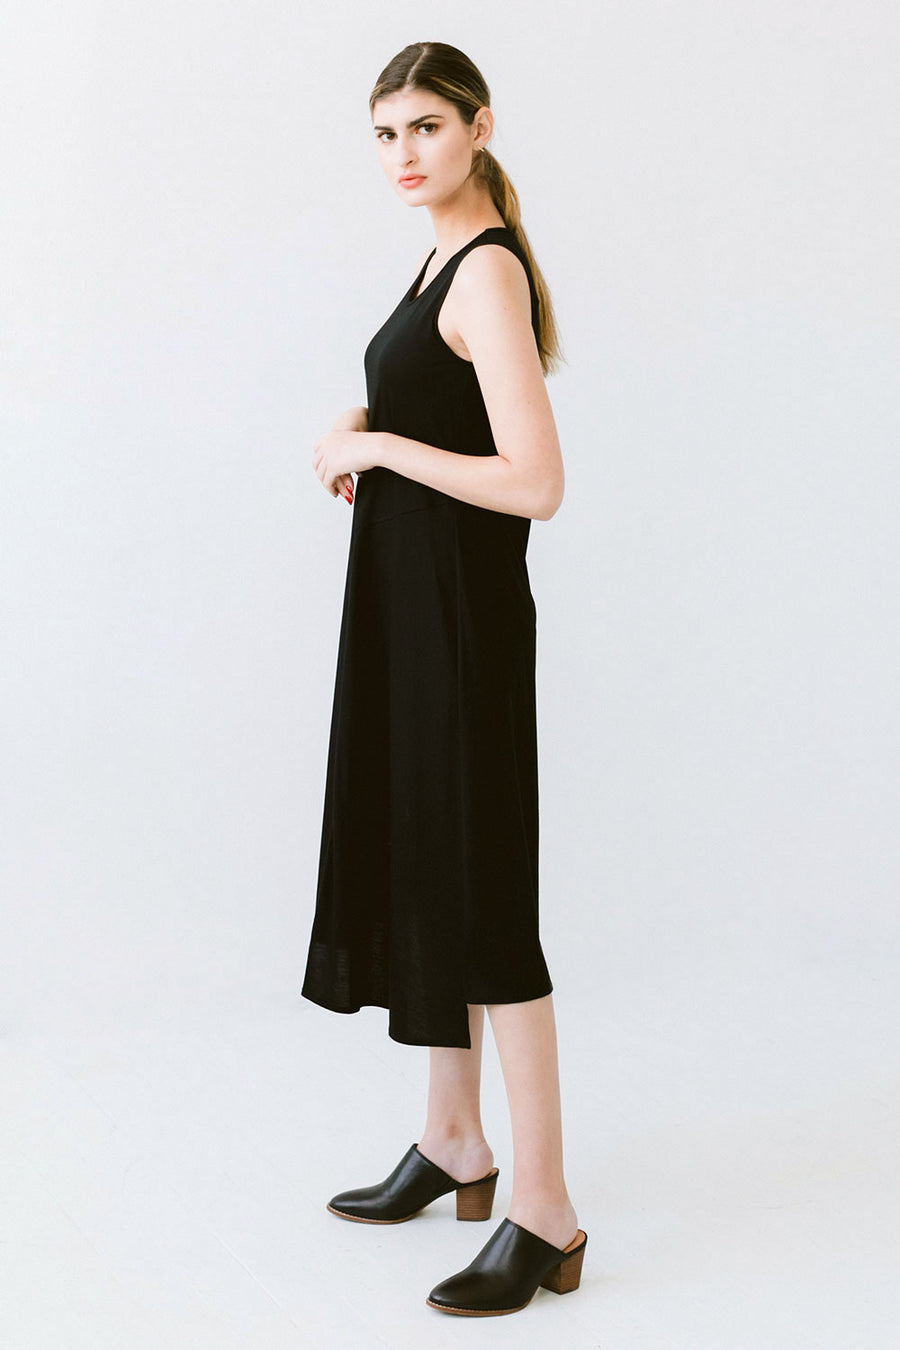 Sleeveless long black dress